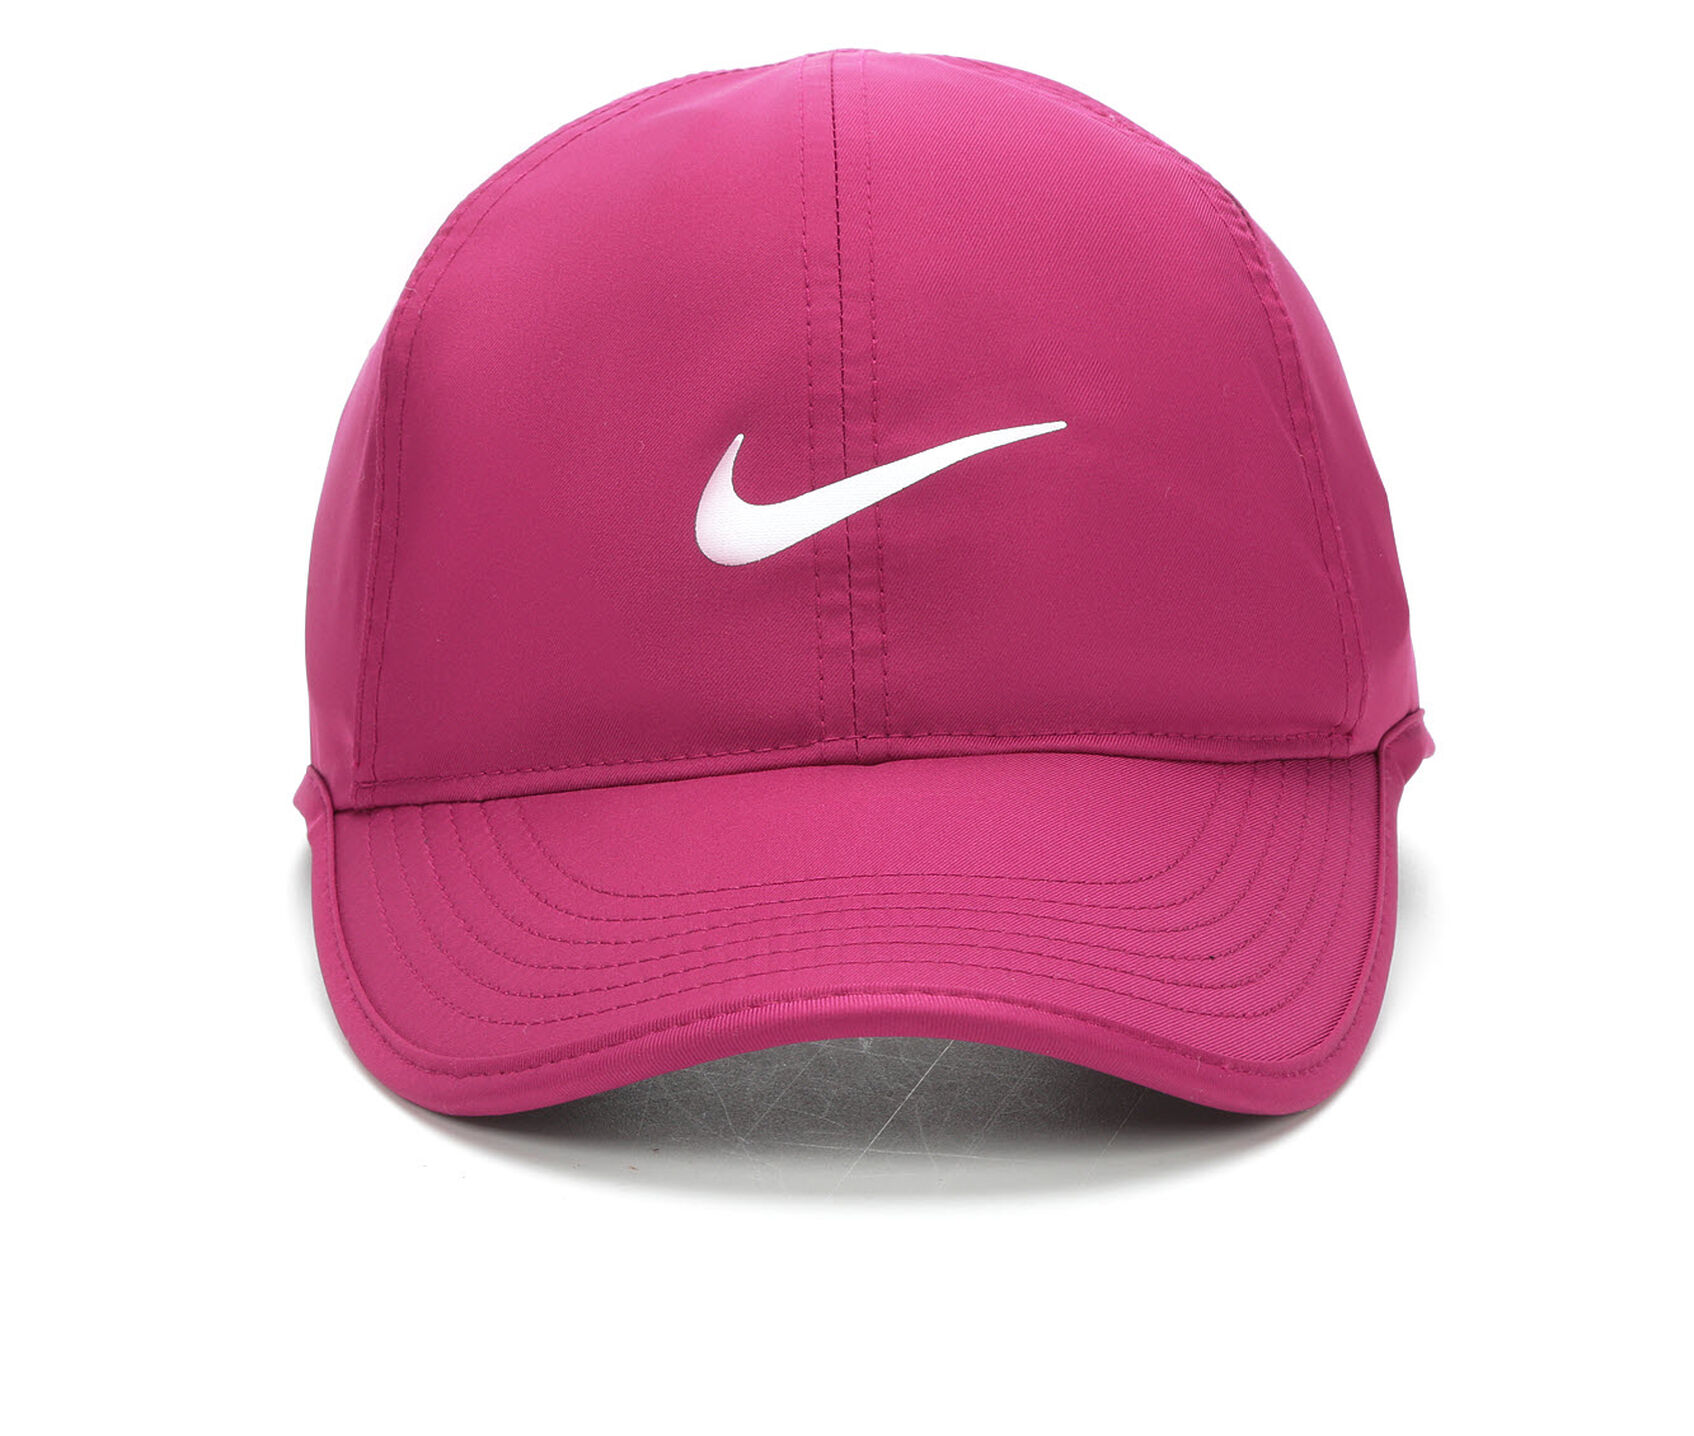 cheaper 9266b 1f530 Nike Featherlight Adjustable Cap. Previous